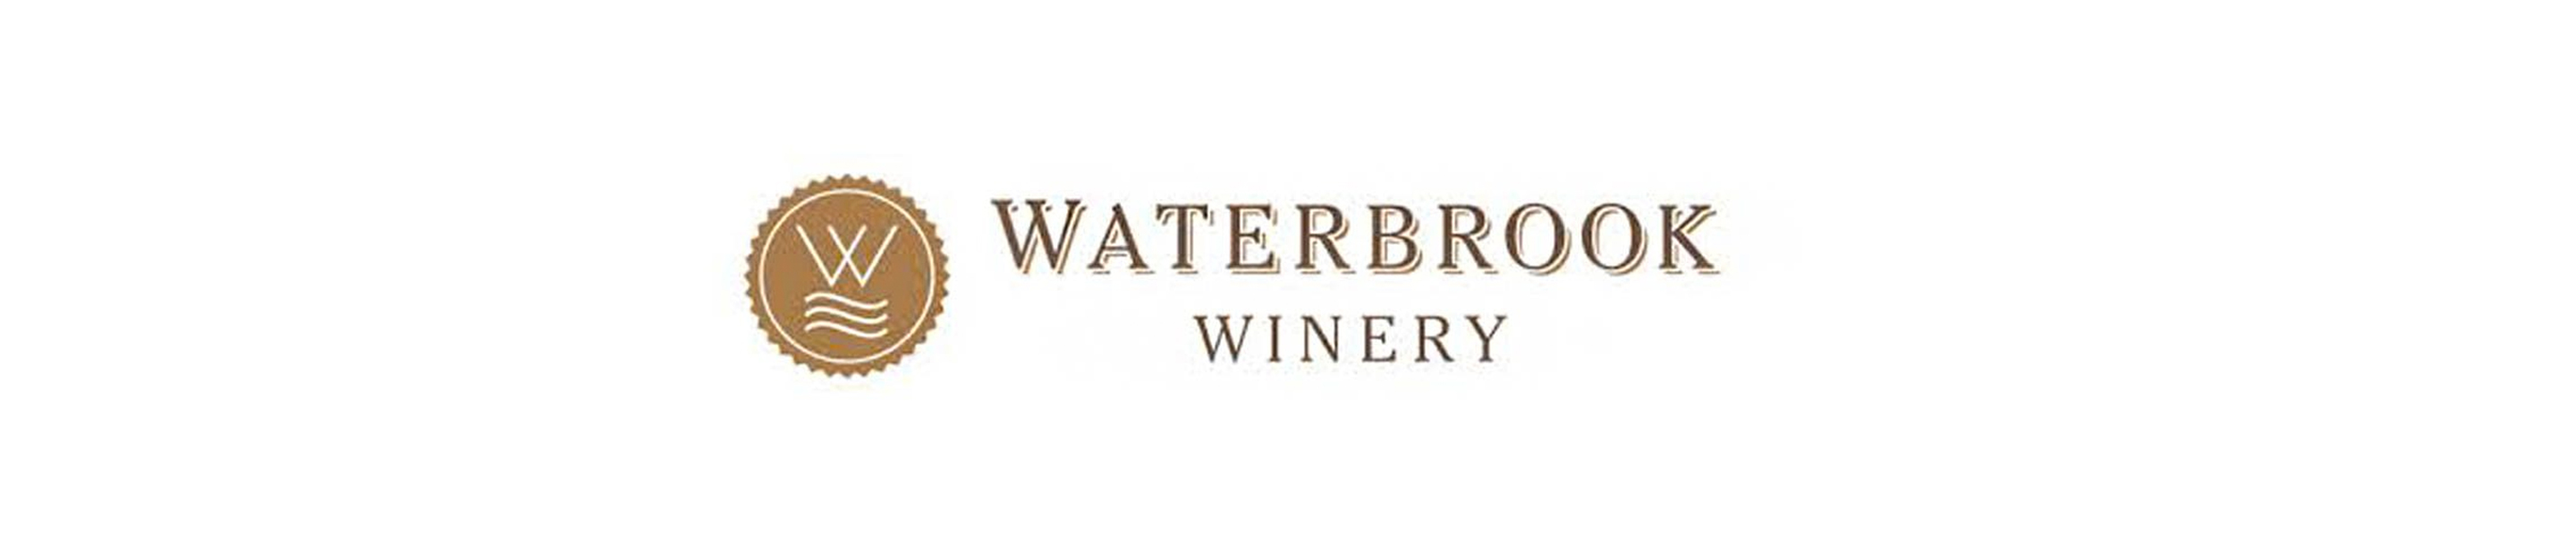 Established in 1984, Waterbrook Winery is a Walla Walla, Washington pioneer. Today it features a state-of-the-art winery, a world-class tasting room and hospitality program, and a 49-acre estate vineyard in the Walla Walla Valley AVA. From vintage to vintage, winemaker John Freeman masterfully handcrafts wines that are true-to-variety, full of depth and structure, and representative of the Columbia Valley's best. Whether for everyday casual or weekend occasions, Waterbrook wines offer authentic Walla Walla heritage paired with distinctively modern Northwest style, resulting in approachable, elegant wines of extraordinary value and superior acclaim.